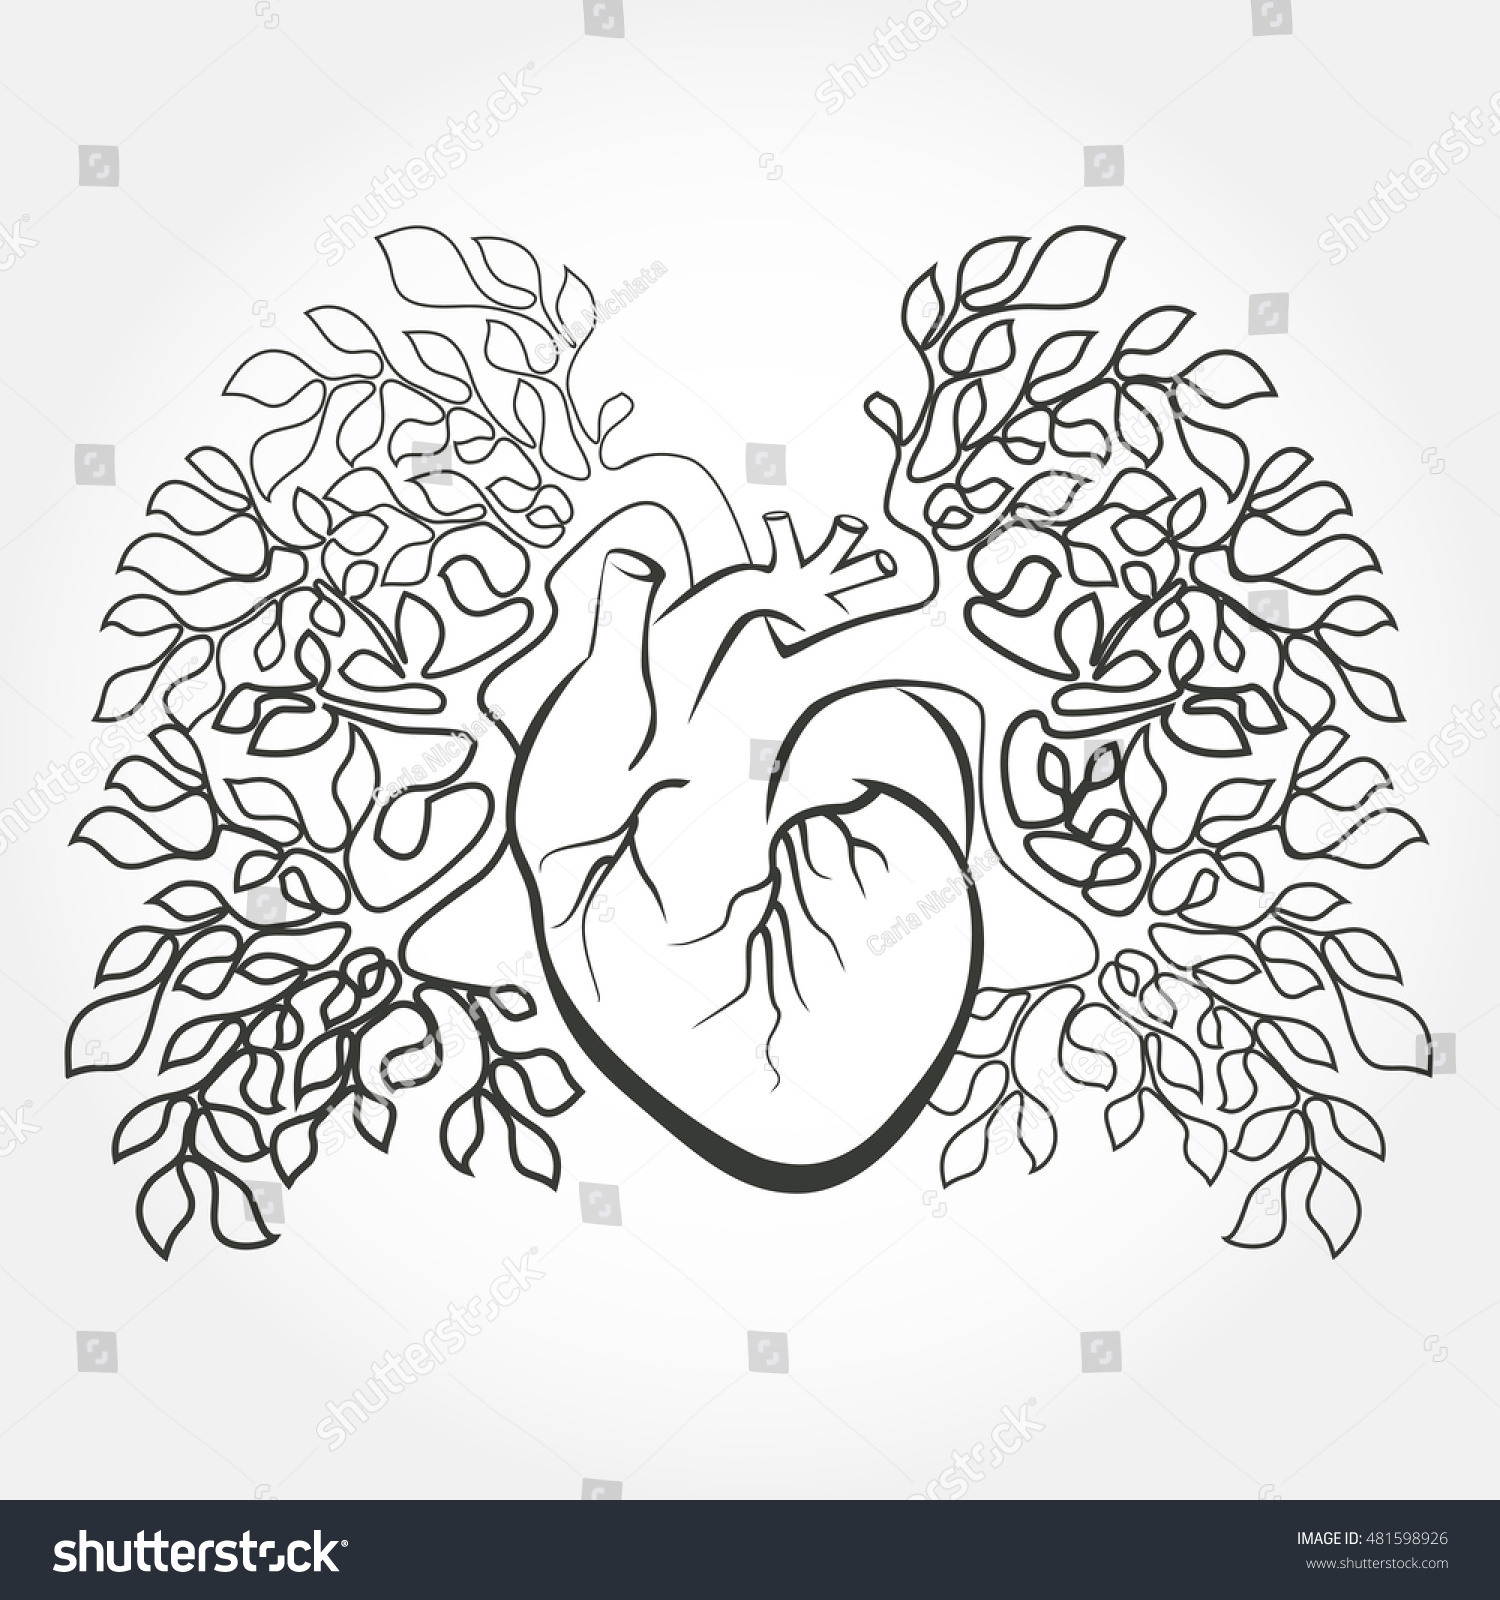 Human Heart Lungs Like Tree Branch Stock Vector (Royalty Free ...